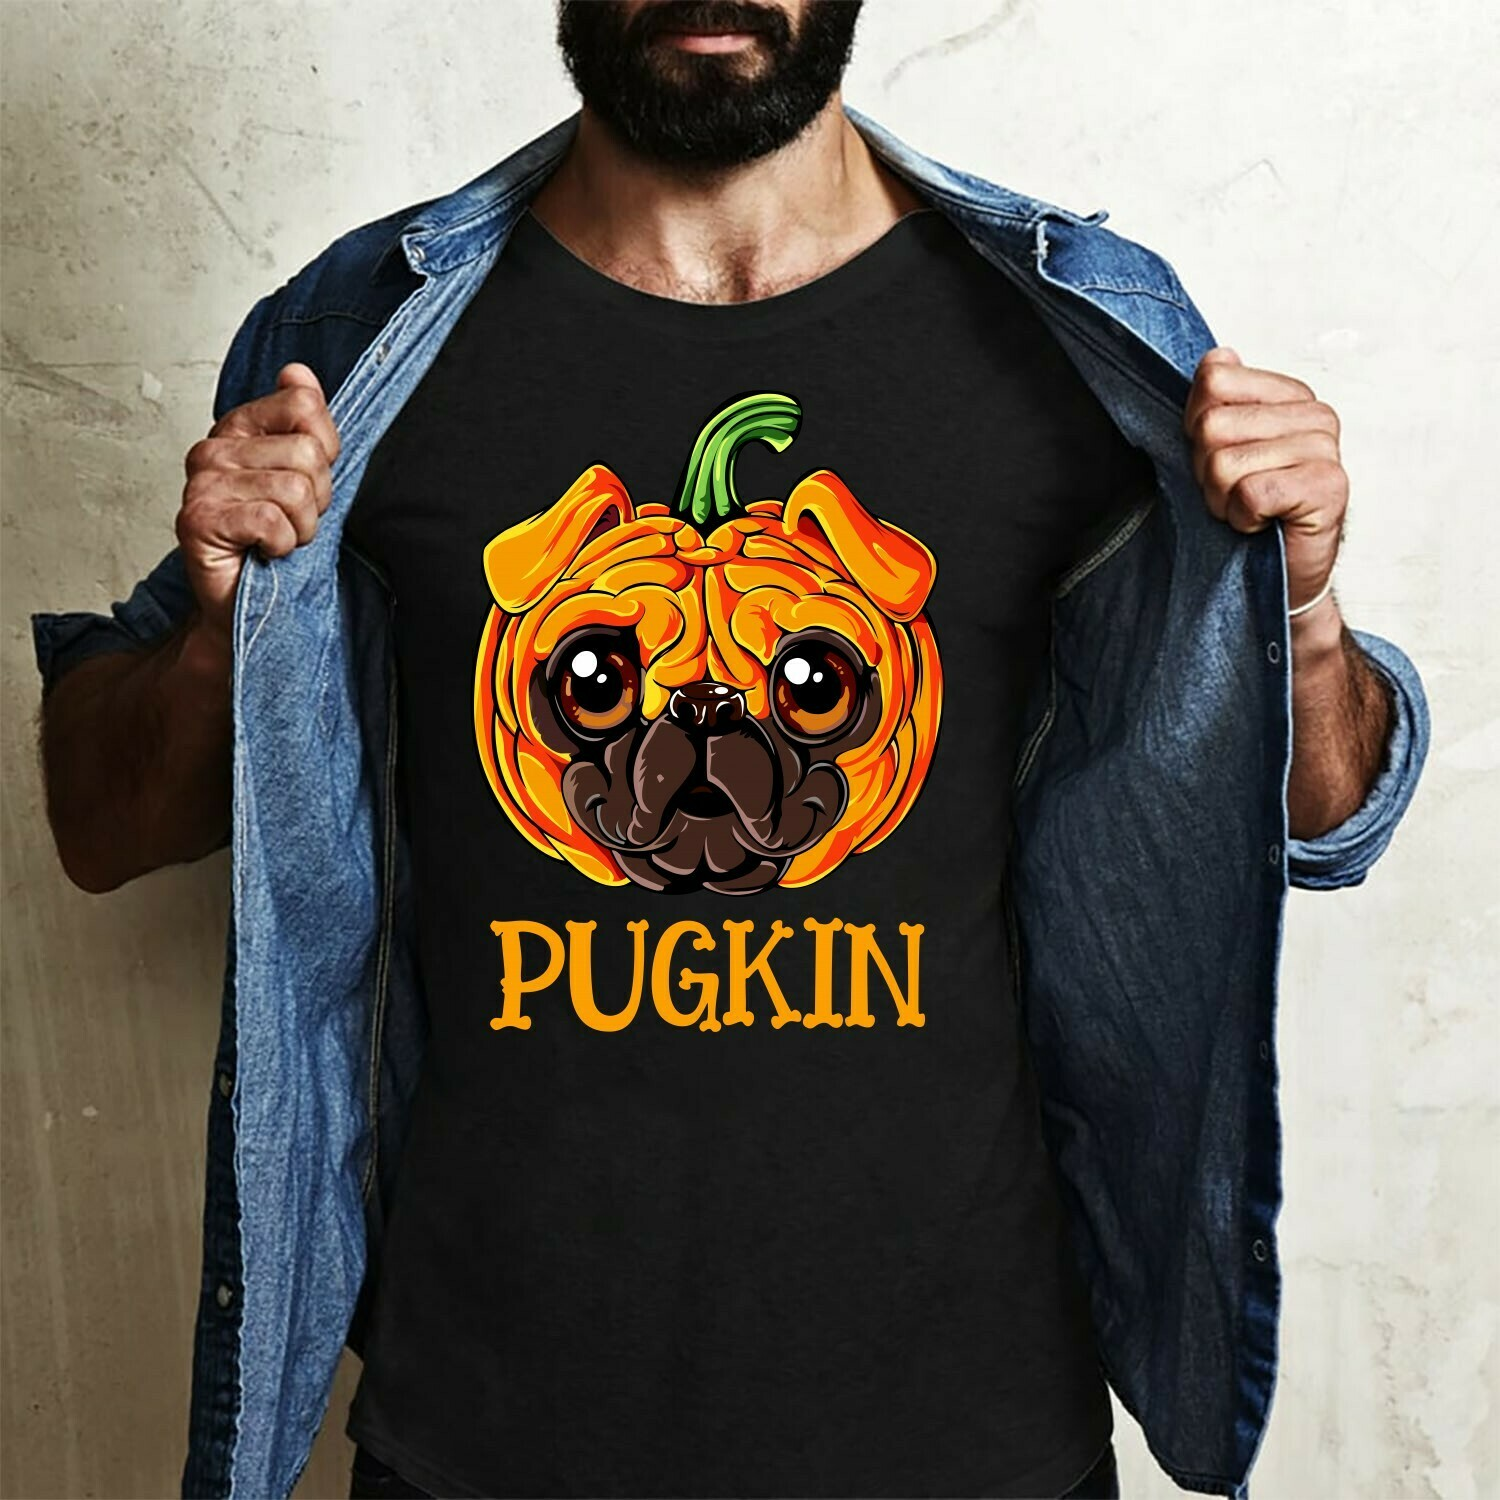 Pugkin Pug Halloween Shirt Gifts For Lovers Autumn Funny Cute Dog Pumpkin Family Vacation Team Party T-Shirt Long Sleeve Sweatshirt Hoodie Jolly Family Gifts